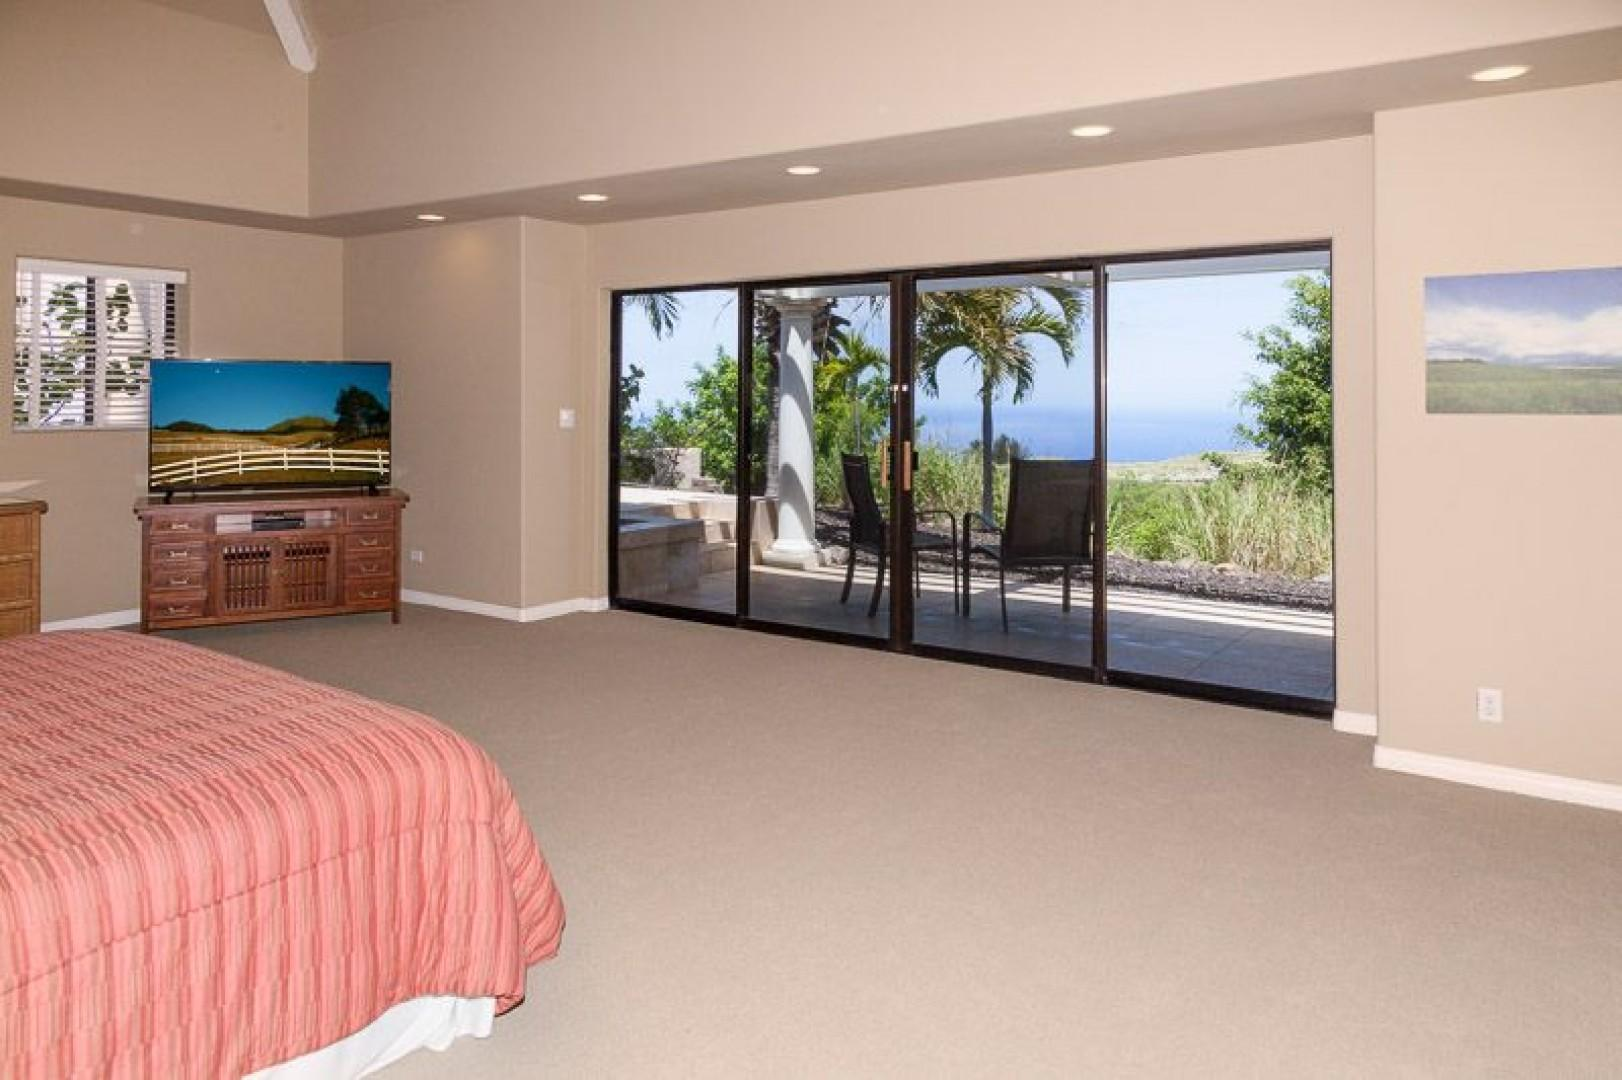 North Master has beautiful Ocean views and plenty of space